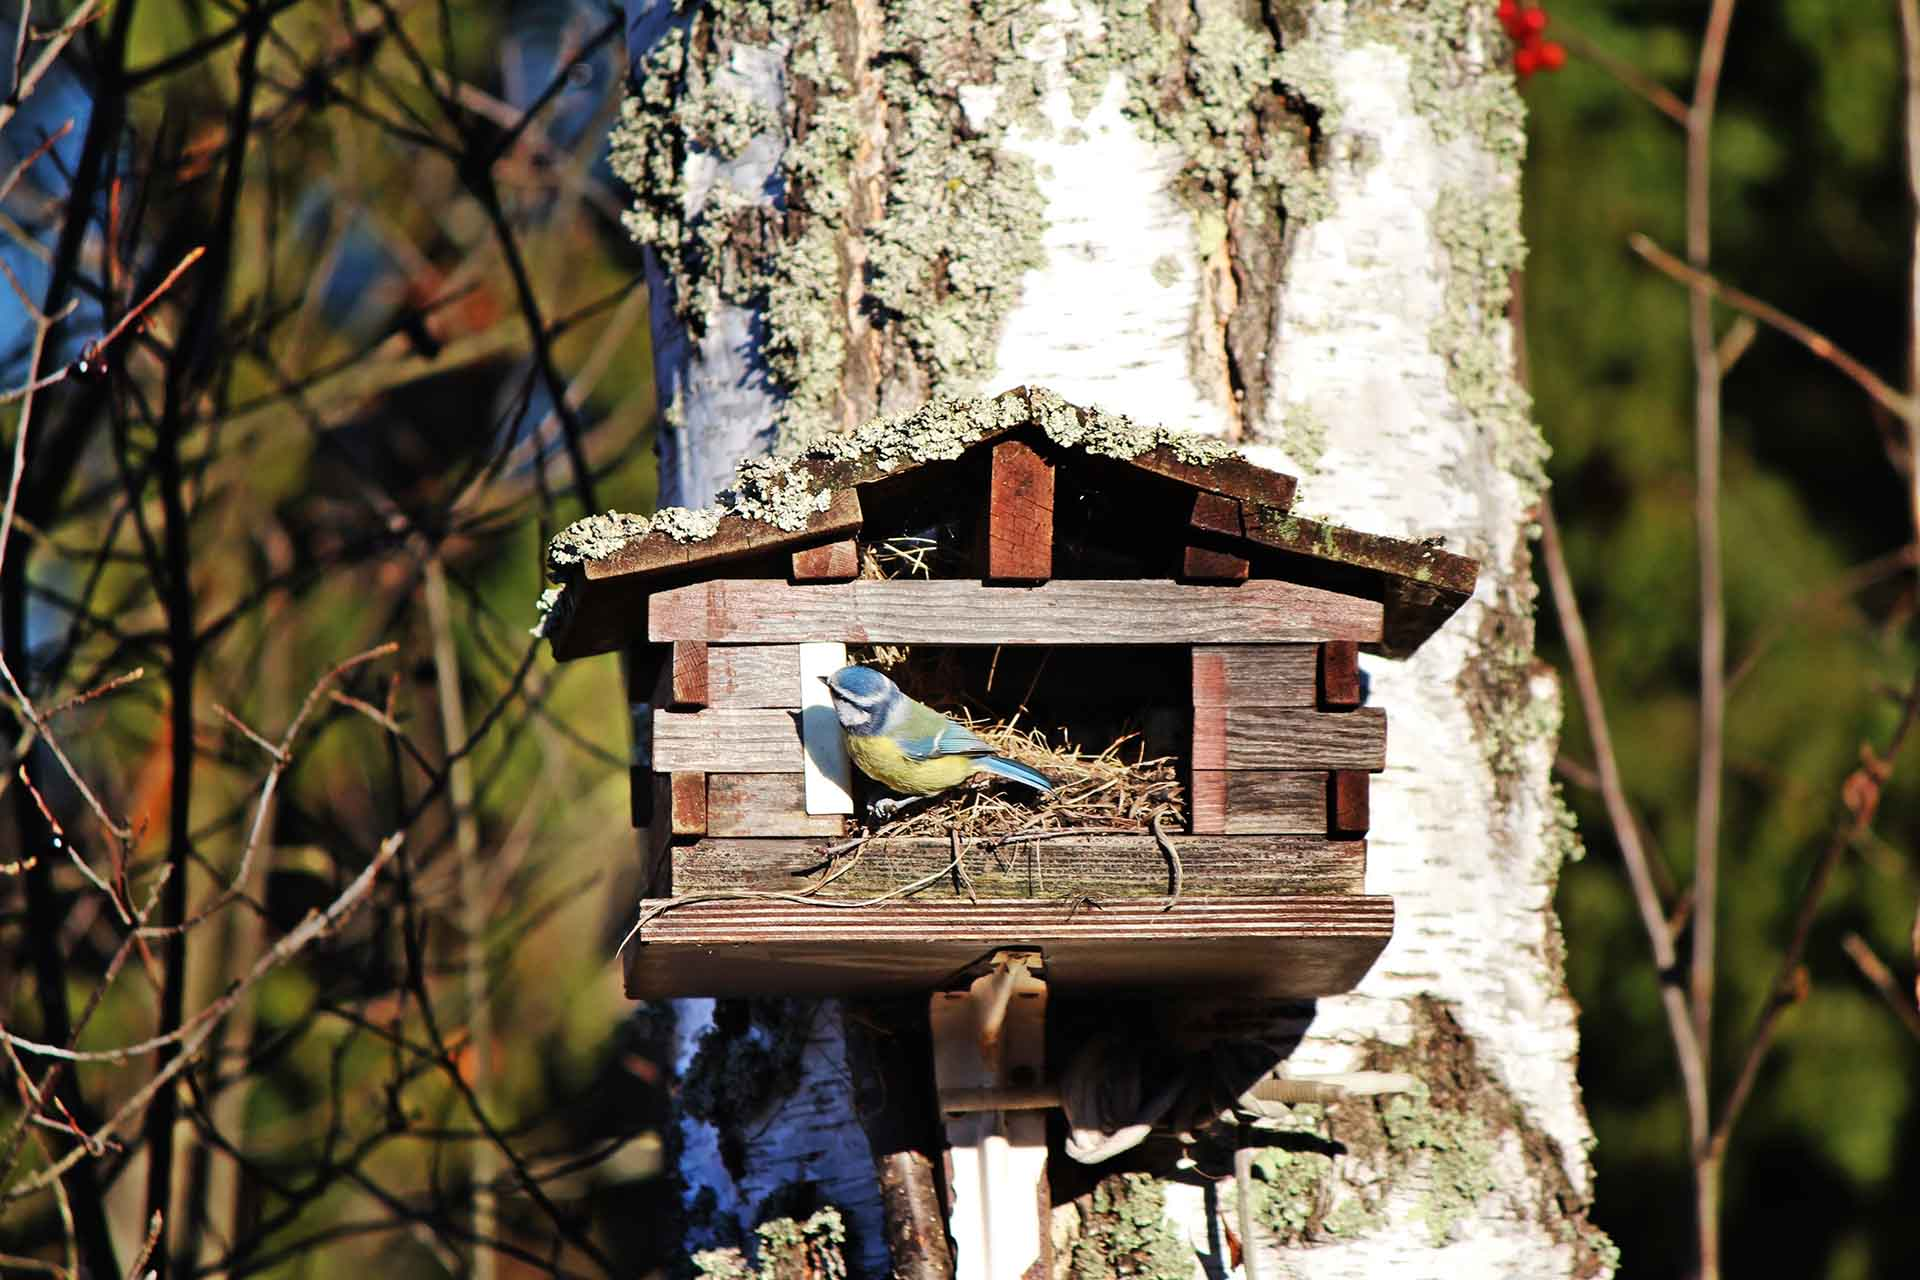 Wooden birdhouse on a tree with a bird sitting inside it.